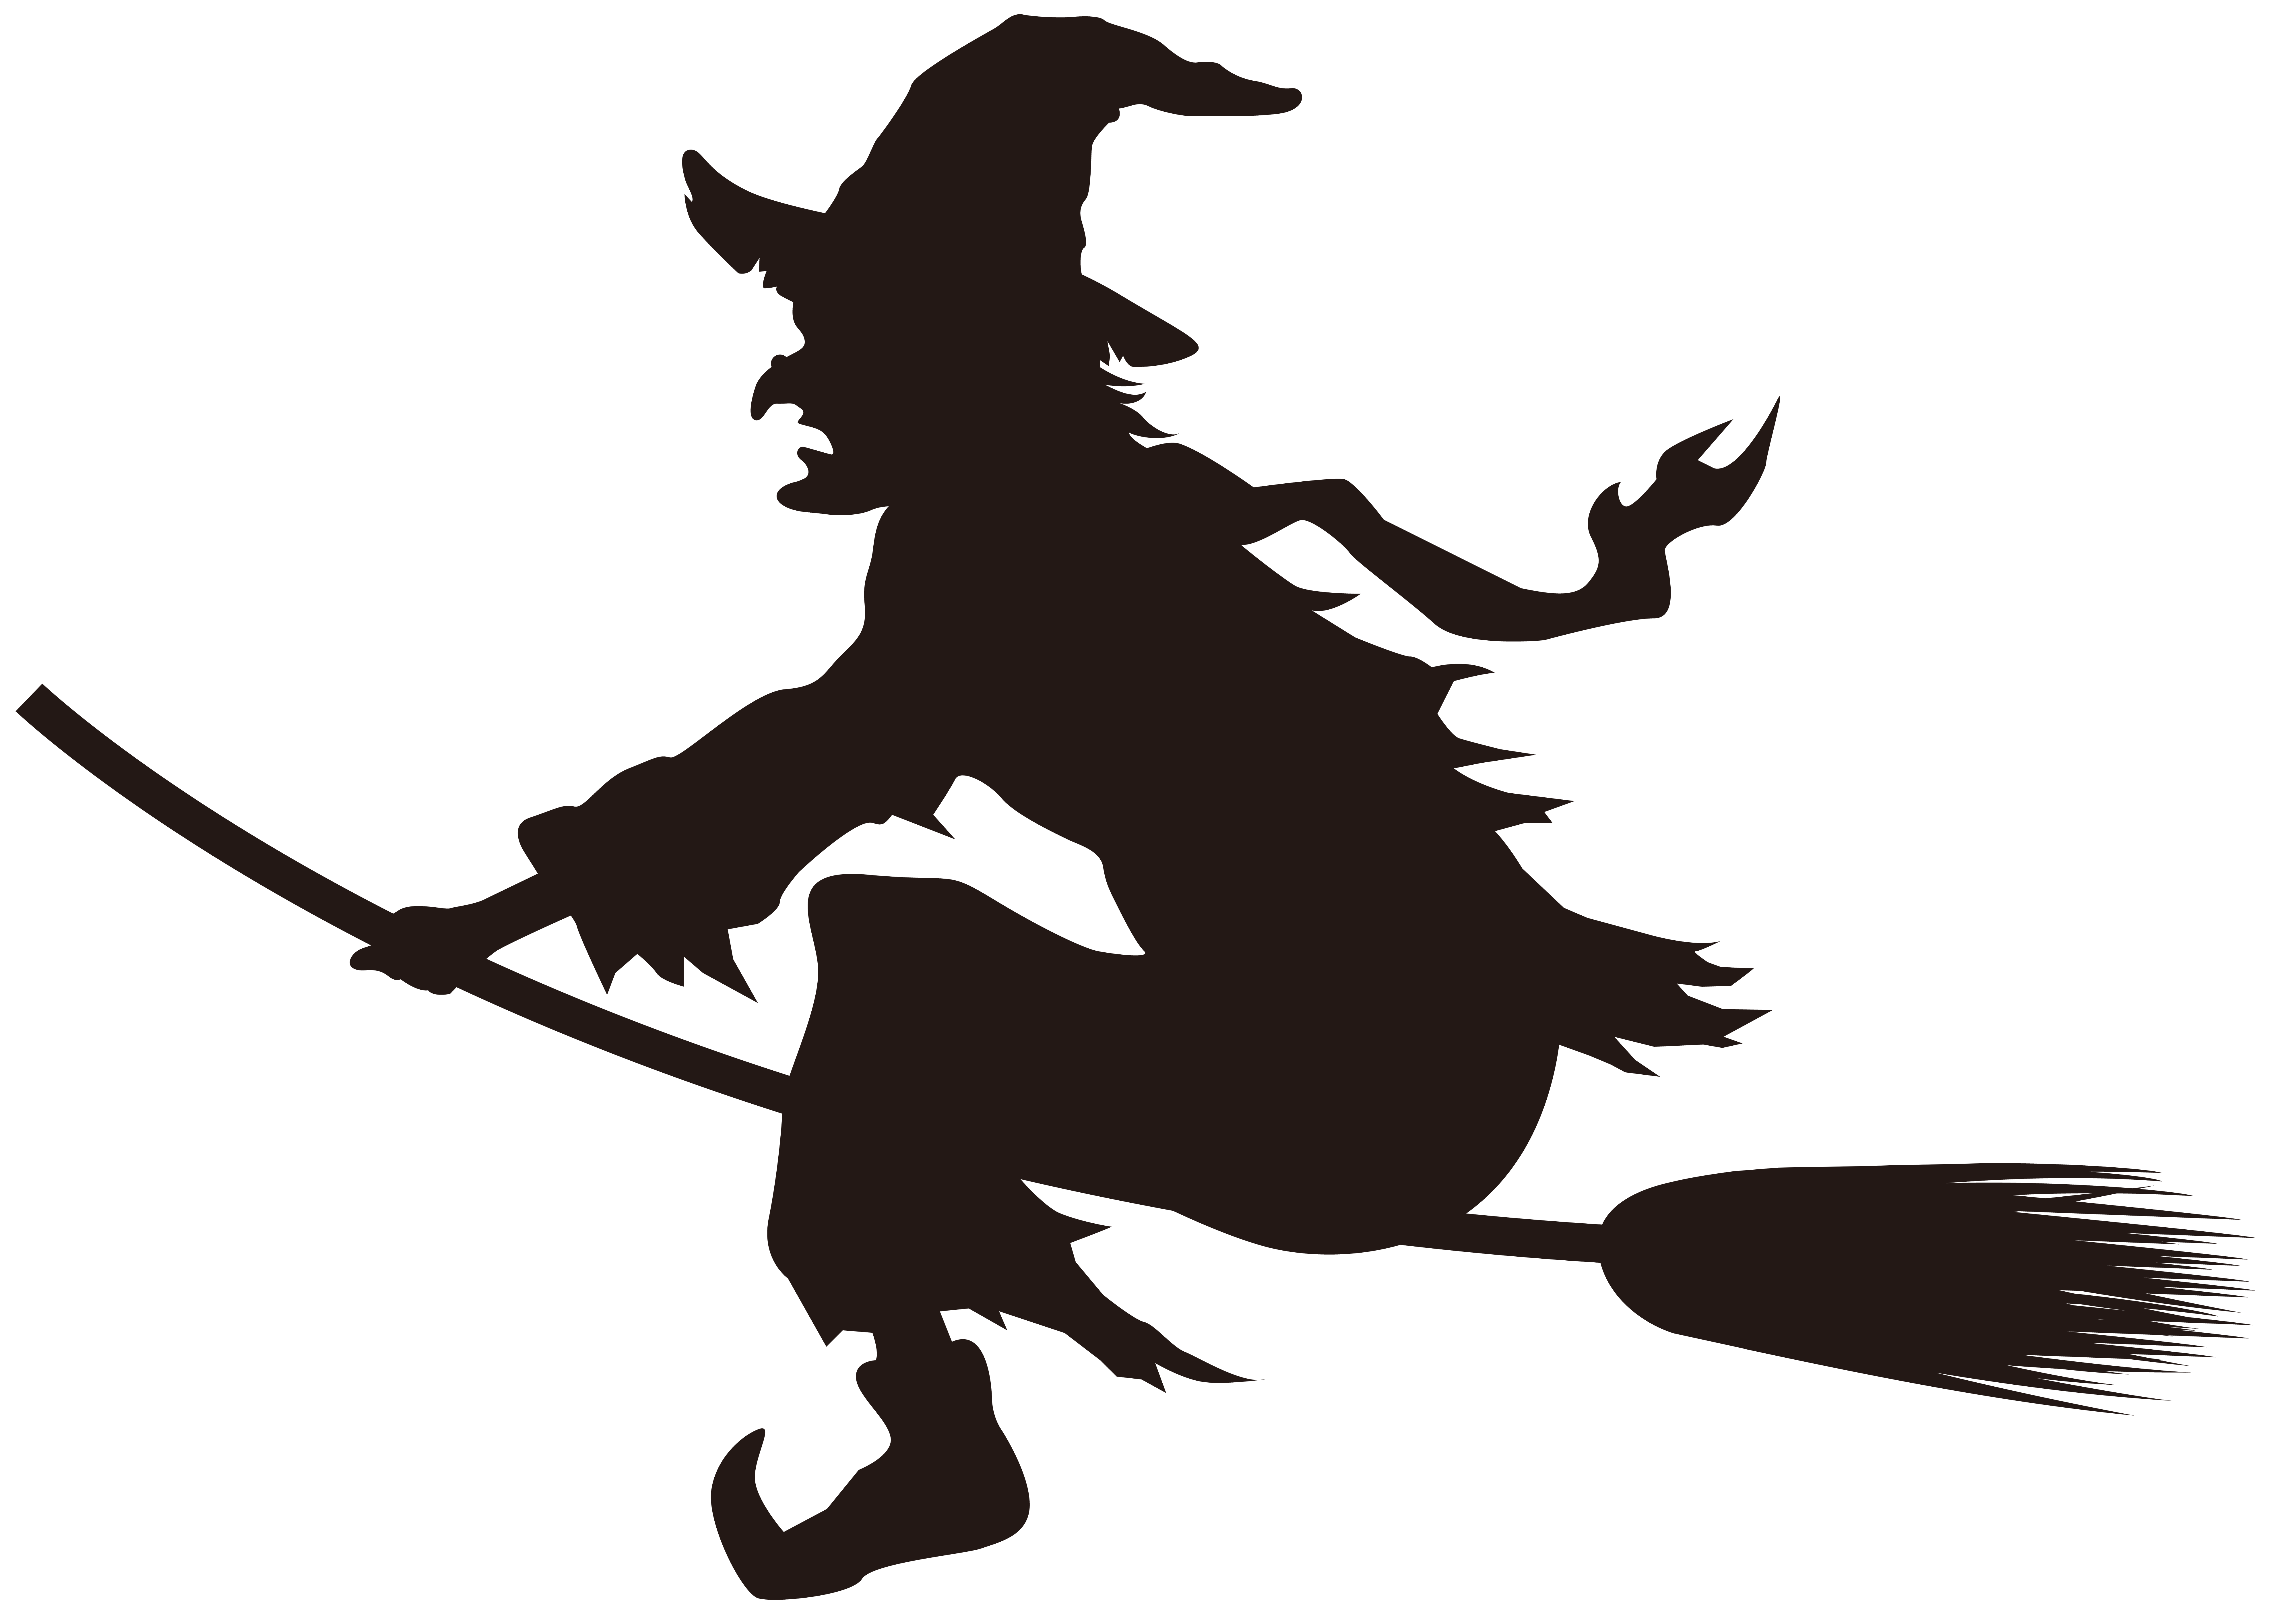 8000x5637 Witches Broom Silhouette Clipart